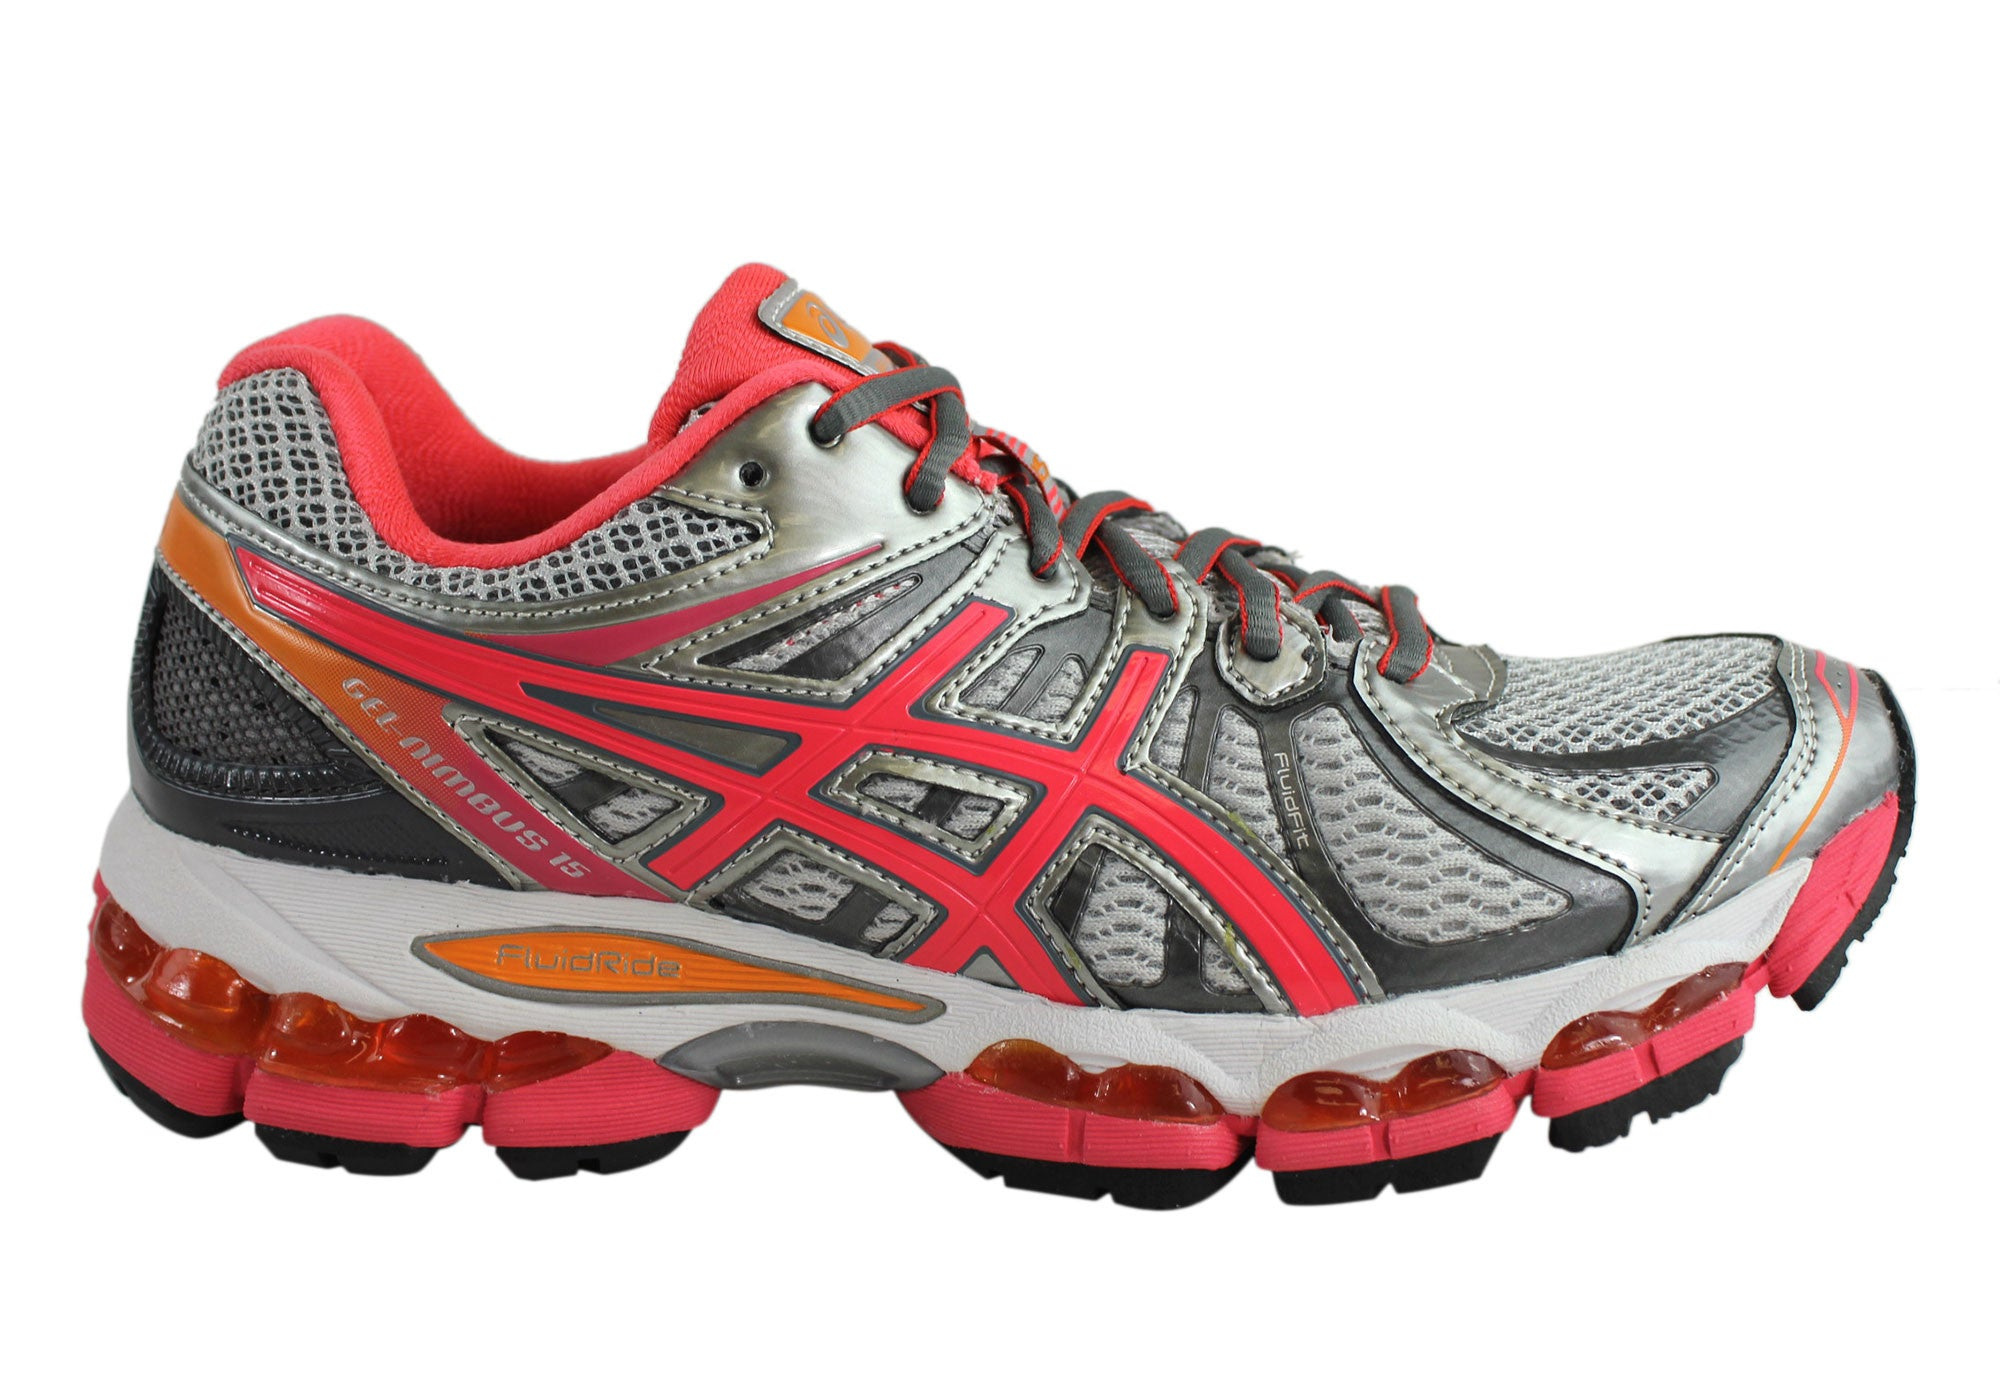 New Cushioned Womens Shoes About Sport Brand Gel Details Premium Asics Running Nimbus 15 5Lc3A4Rjq